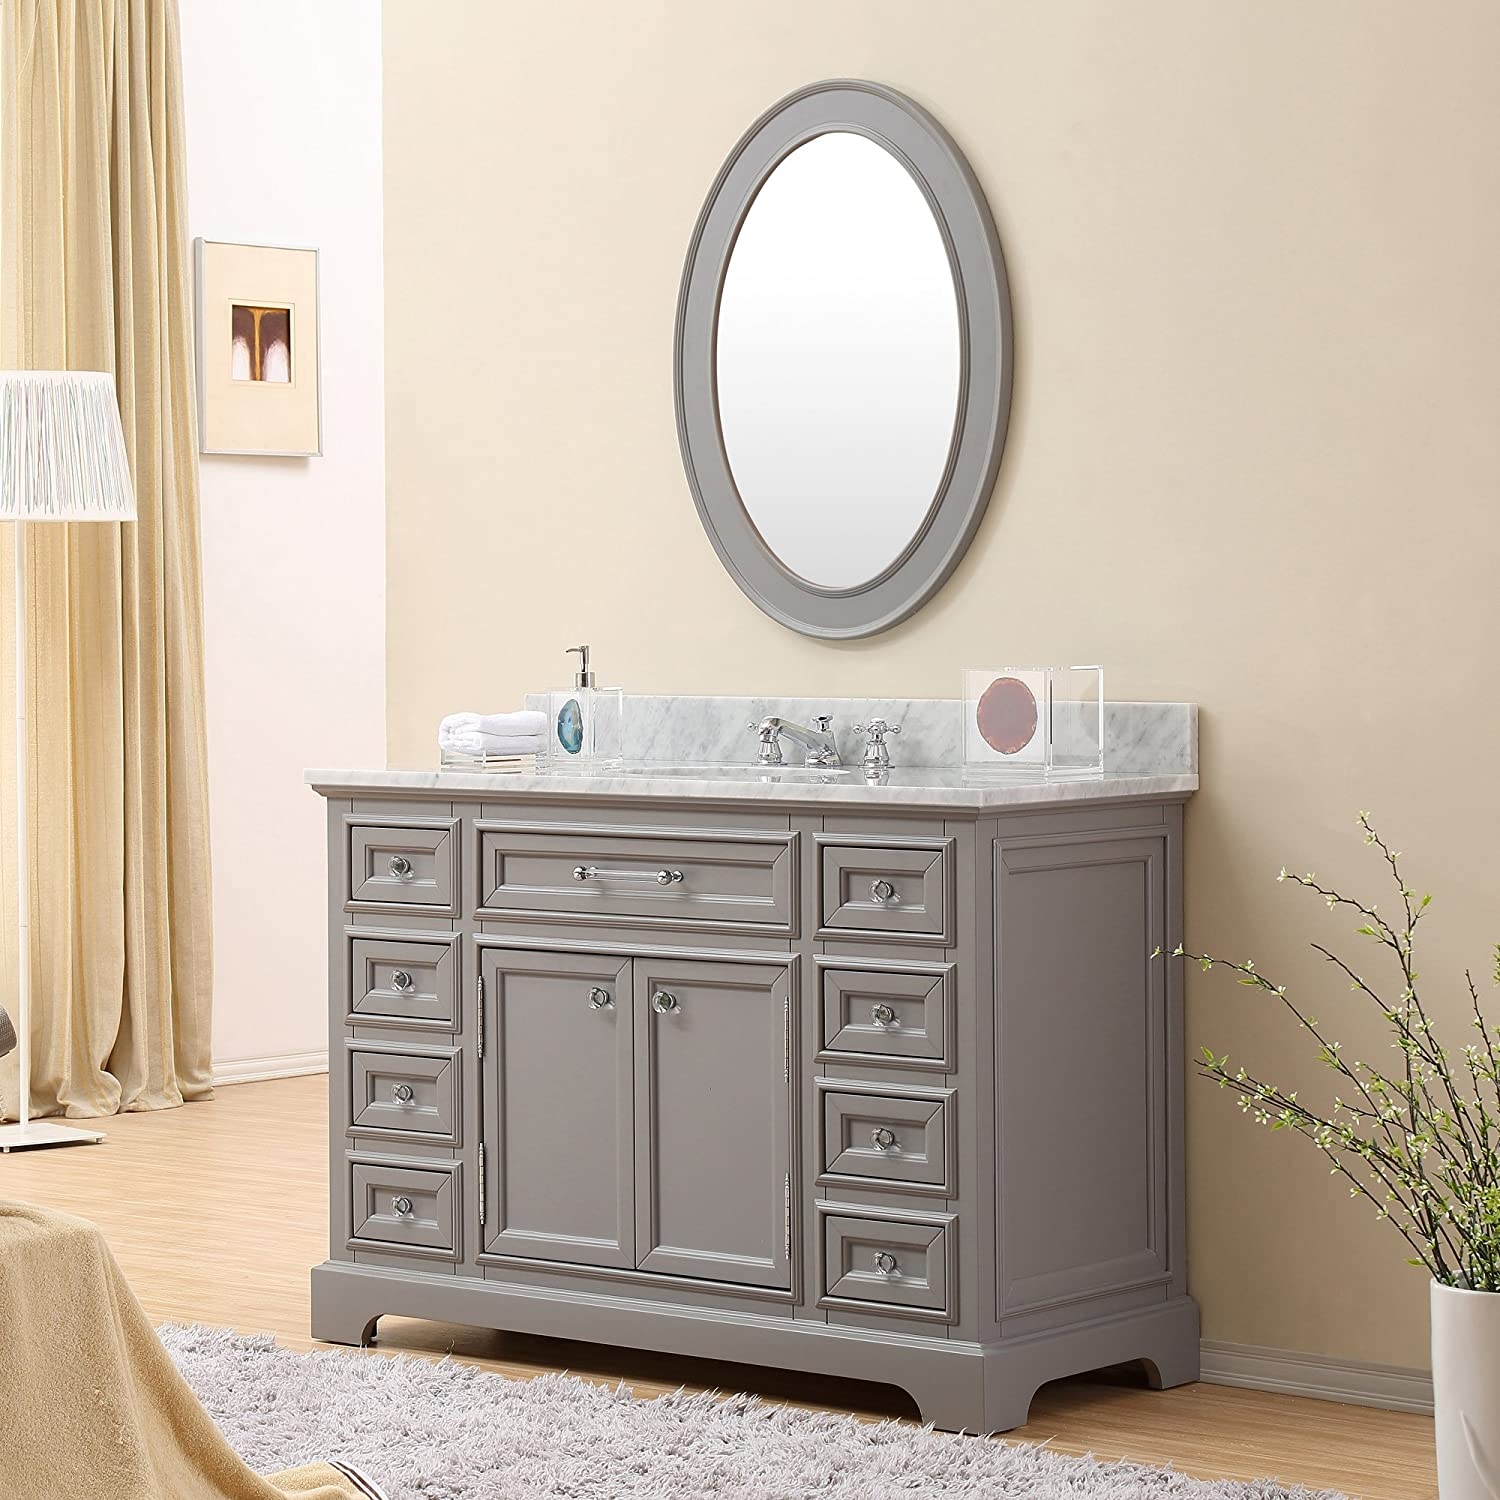 Single Sink Bathroom Vanity on martha stewart seal harbor bathroom vanity, 48 single bathroom vanities, french provincial bathroom vanity, 30 inch bathroom vanity, bathroom cabinets over vanity, 24 inch sink vanity, sheffield bathroom vanity, 60 inch single bathroom vanity, white single sink vanity, dresser bathroom vanity, diy pallet bathroom vanity, sale home depot bathroom vanity, single basin bathroom vanity, mocha bathroom vanity, cheap single bathroom vanity, long single sink vanity, distressed cream bathroom vanity, trough sinks bathroom vanity, lowe's unfinished bathroom vanity, 40 bathroom vanity,